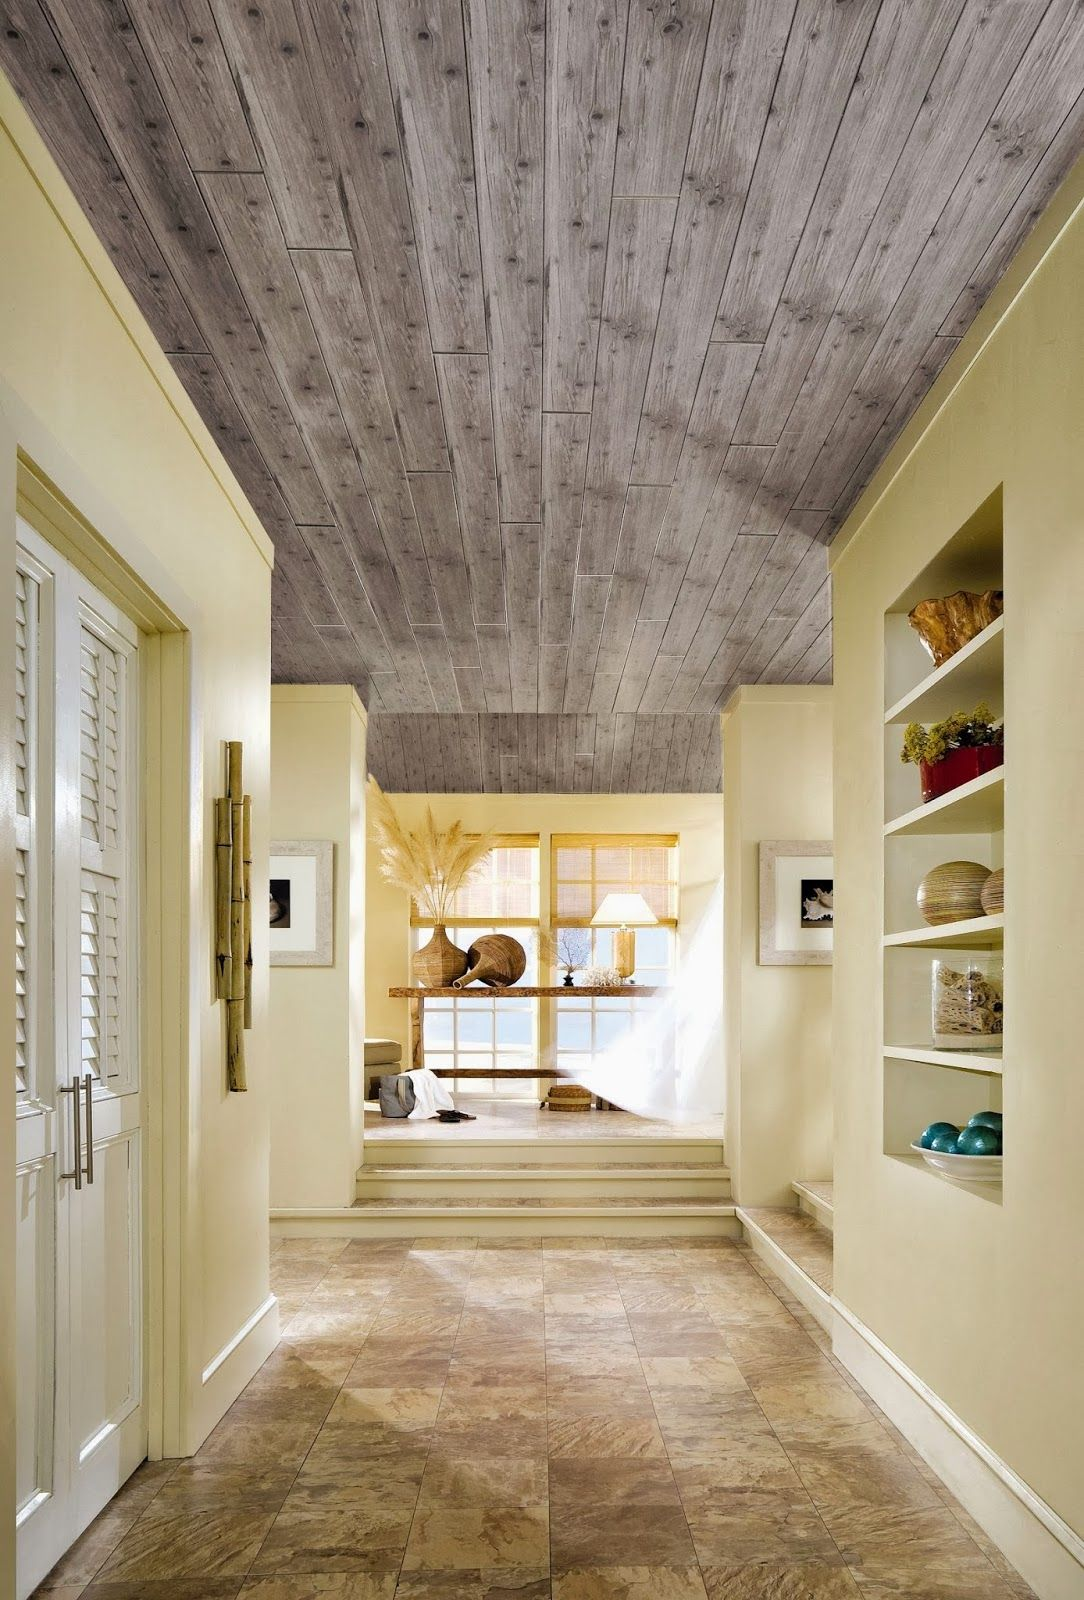 Wood ceiling hide popcorn ceilings pinterest popcorn how to hide popcorn ceilings dailygadgetfo Image collections